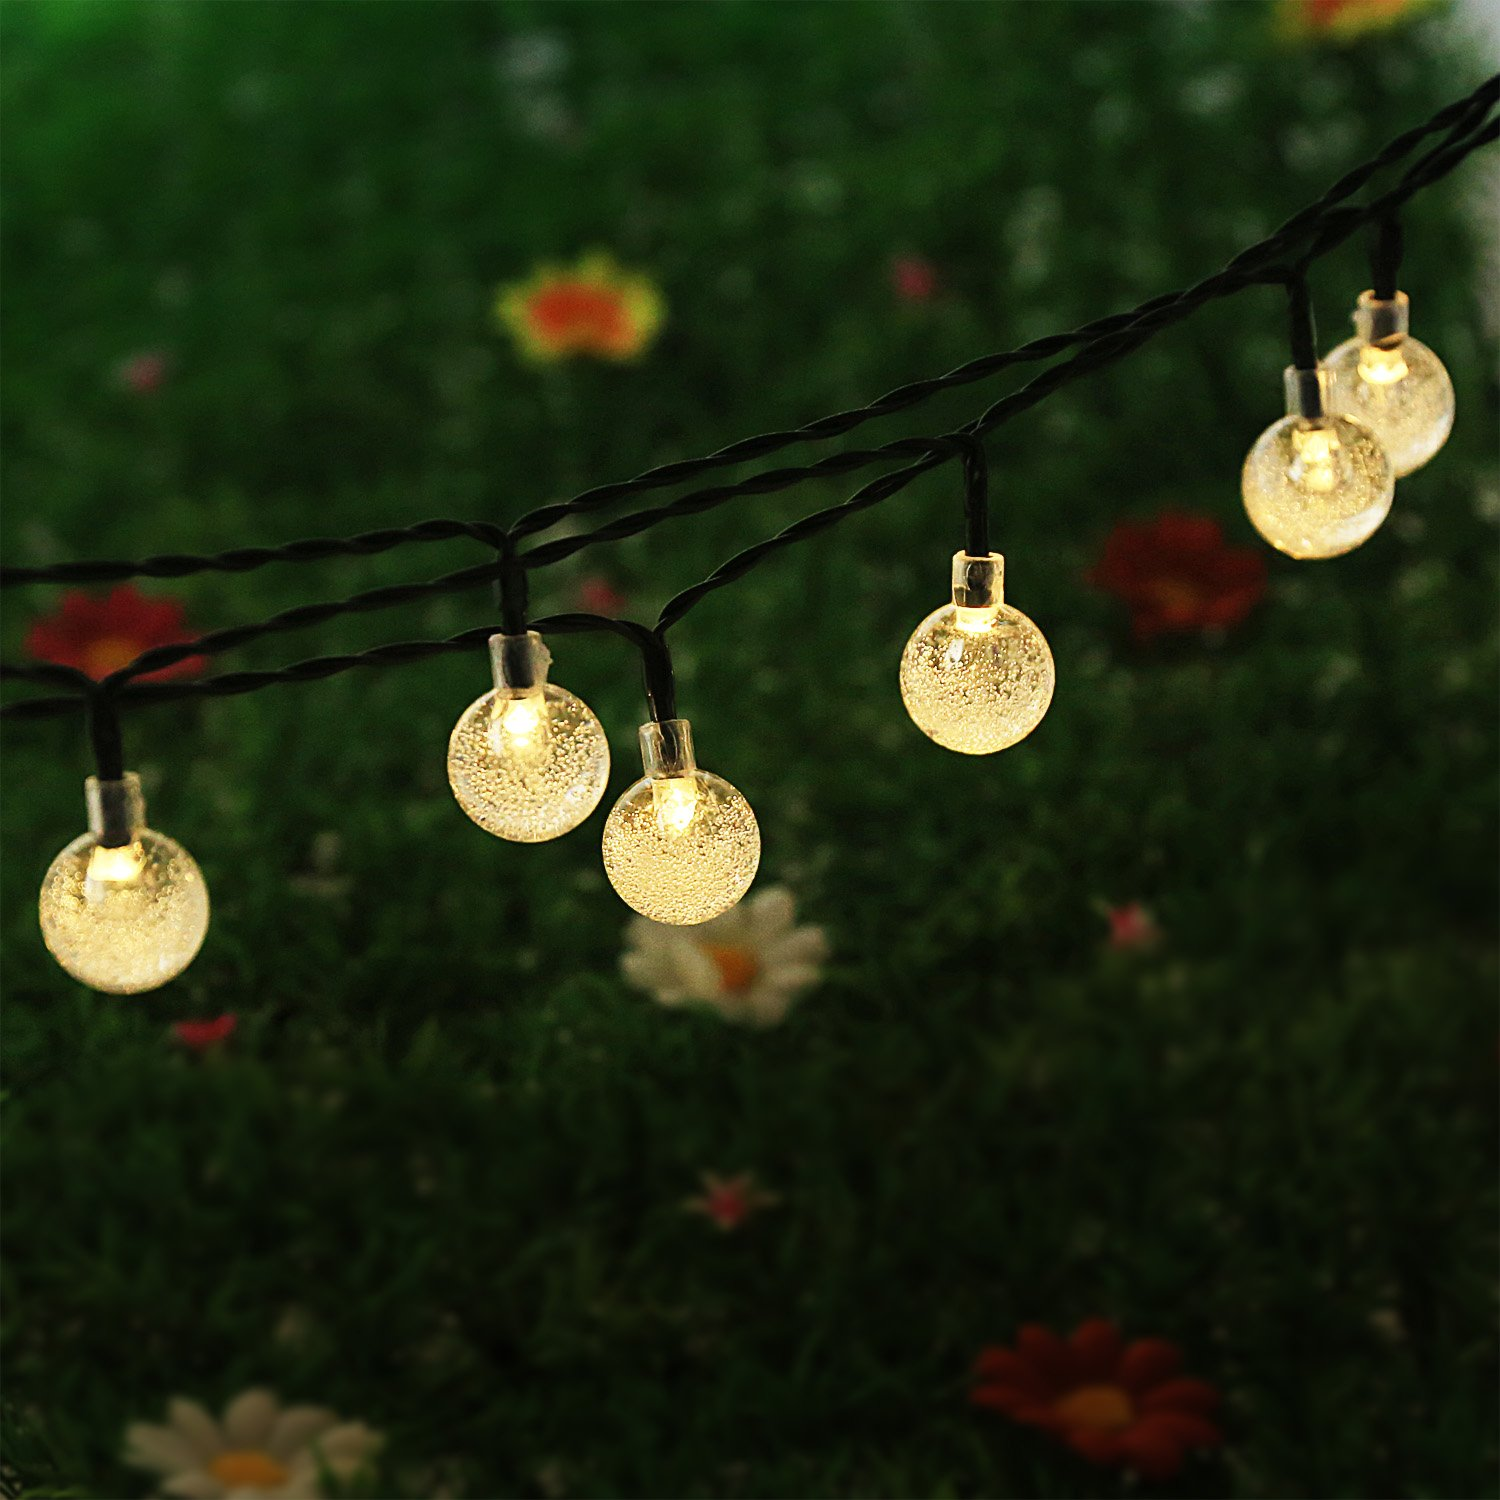 White String Garden Lights : NEWSTYLE 16.4Ft 30 LED Crystal Ball Solar Powered Outdoor String Lights for O